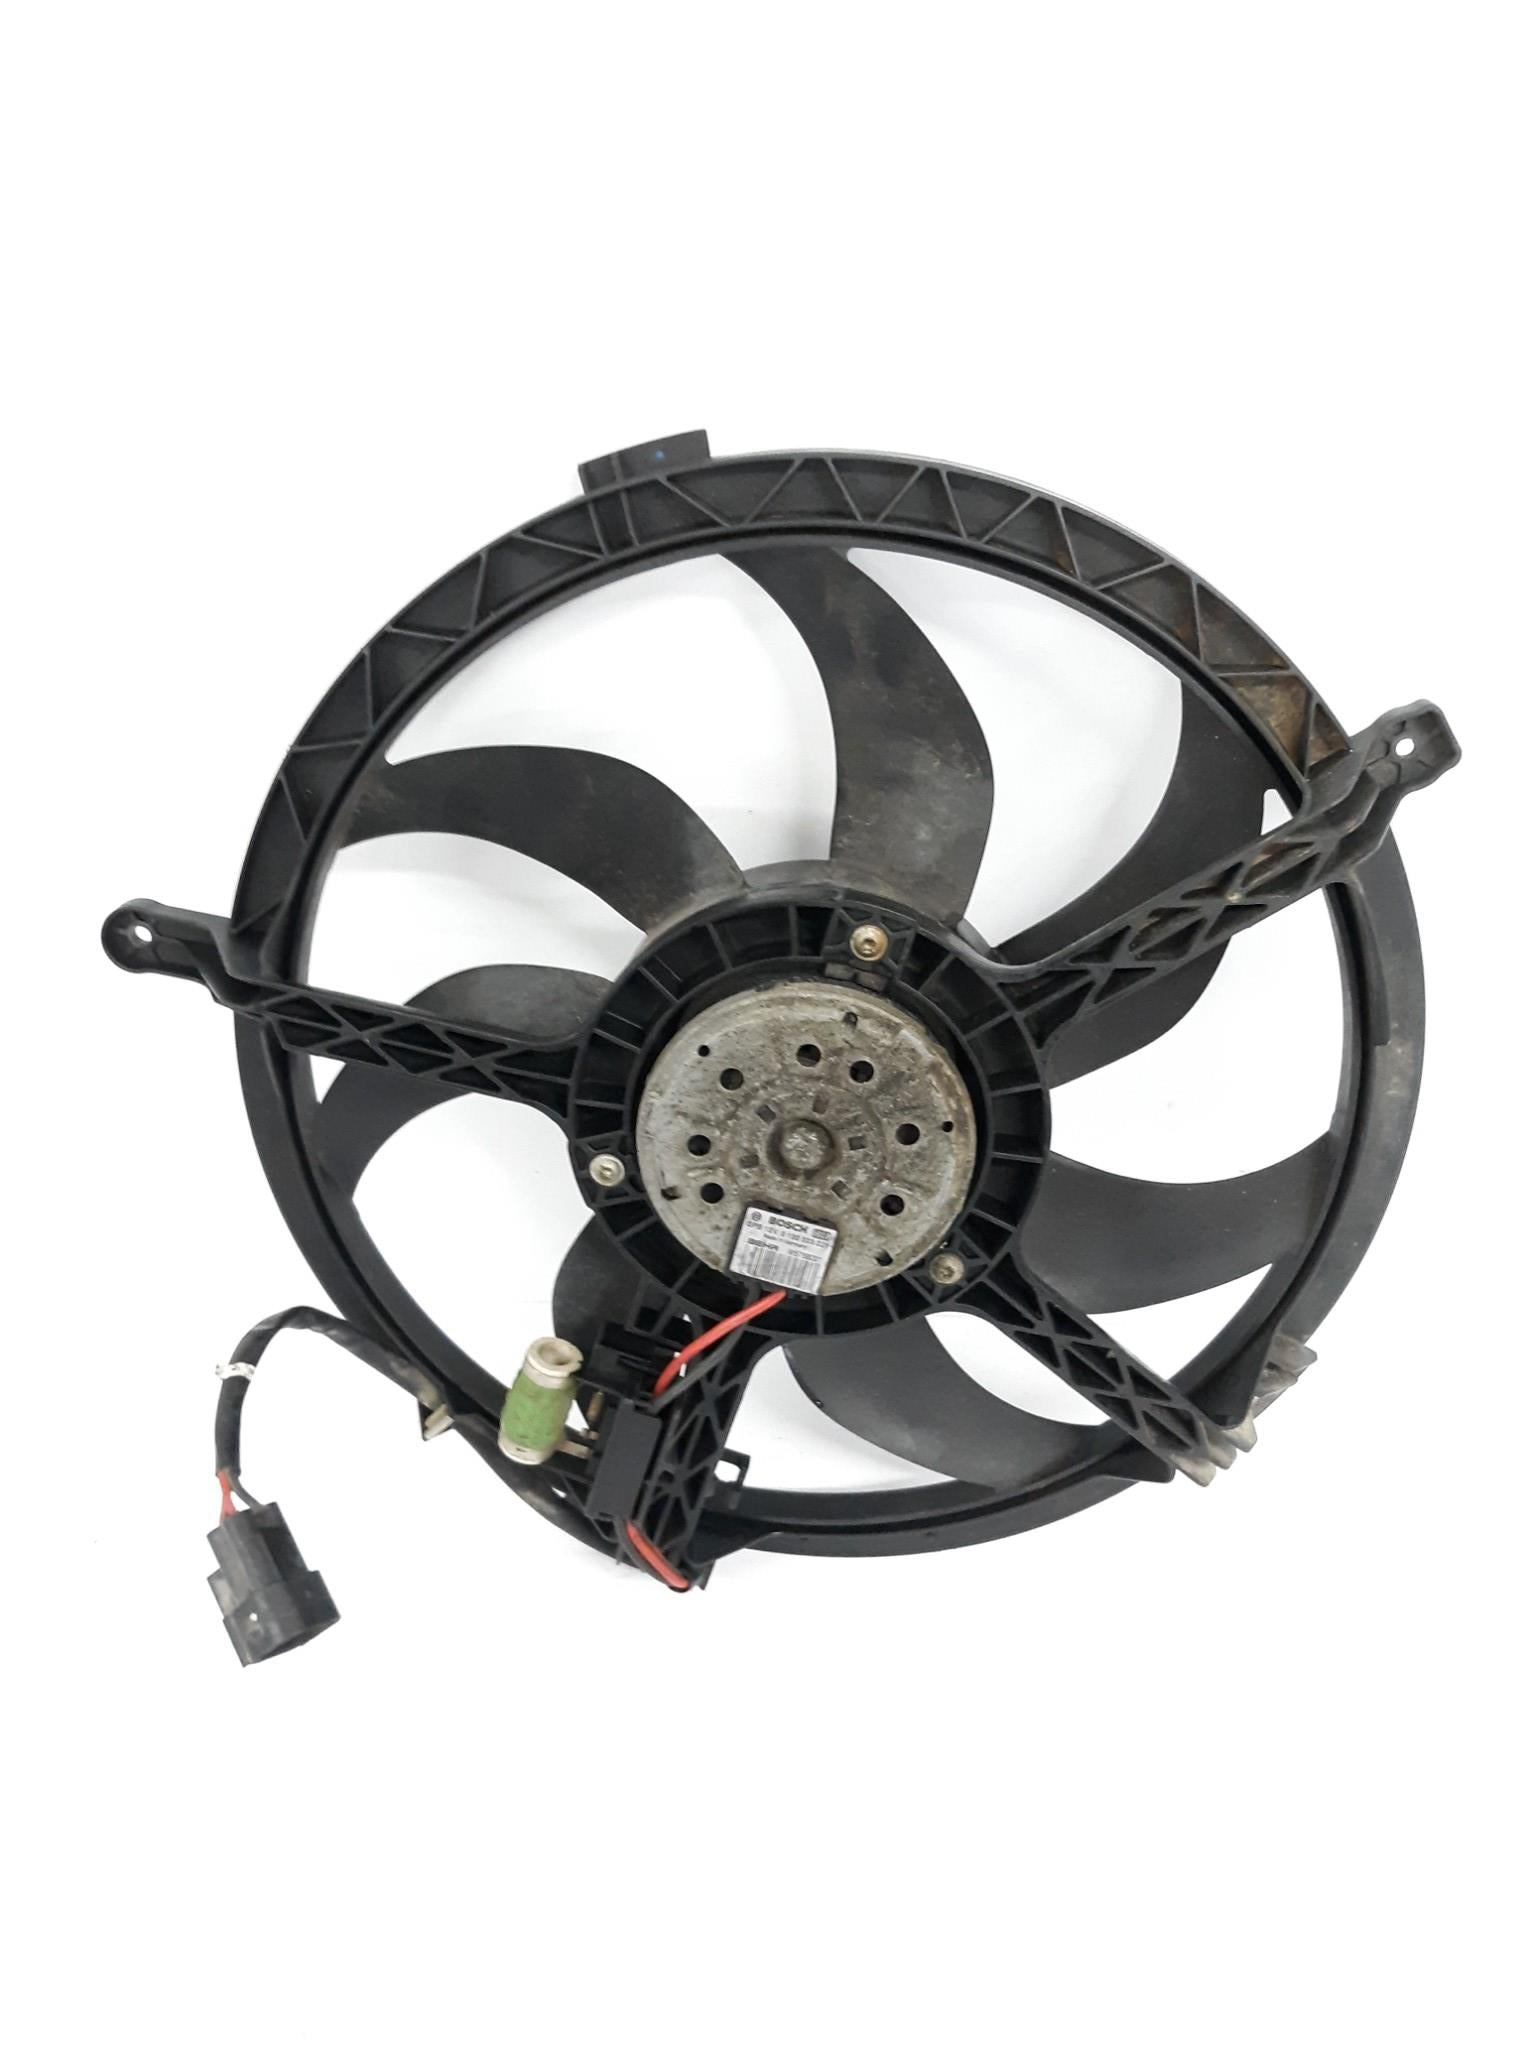 2007-2015 Mini Cooper Engine Radiator Cooling Fan Motor OEM 2752632